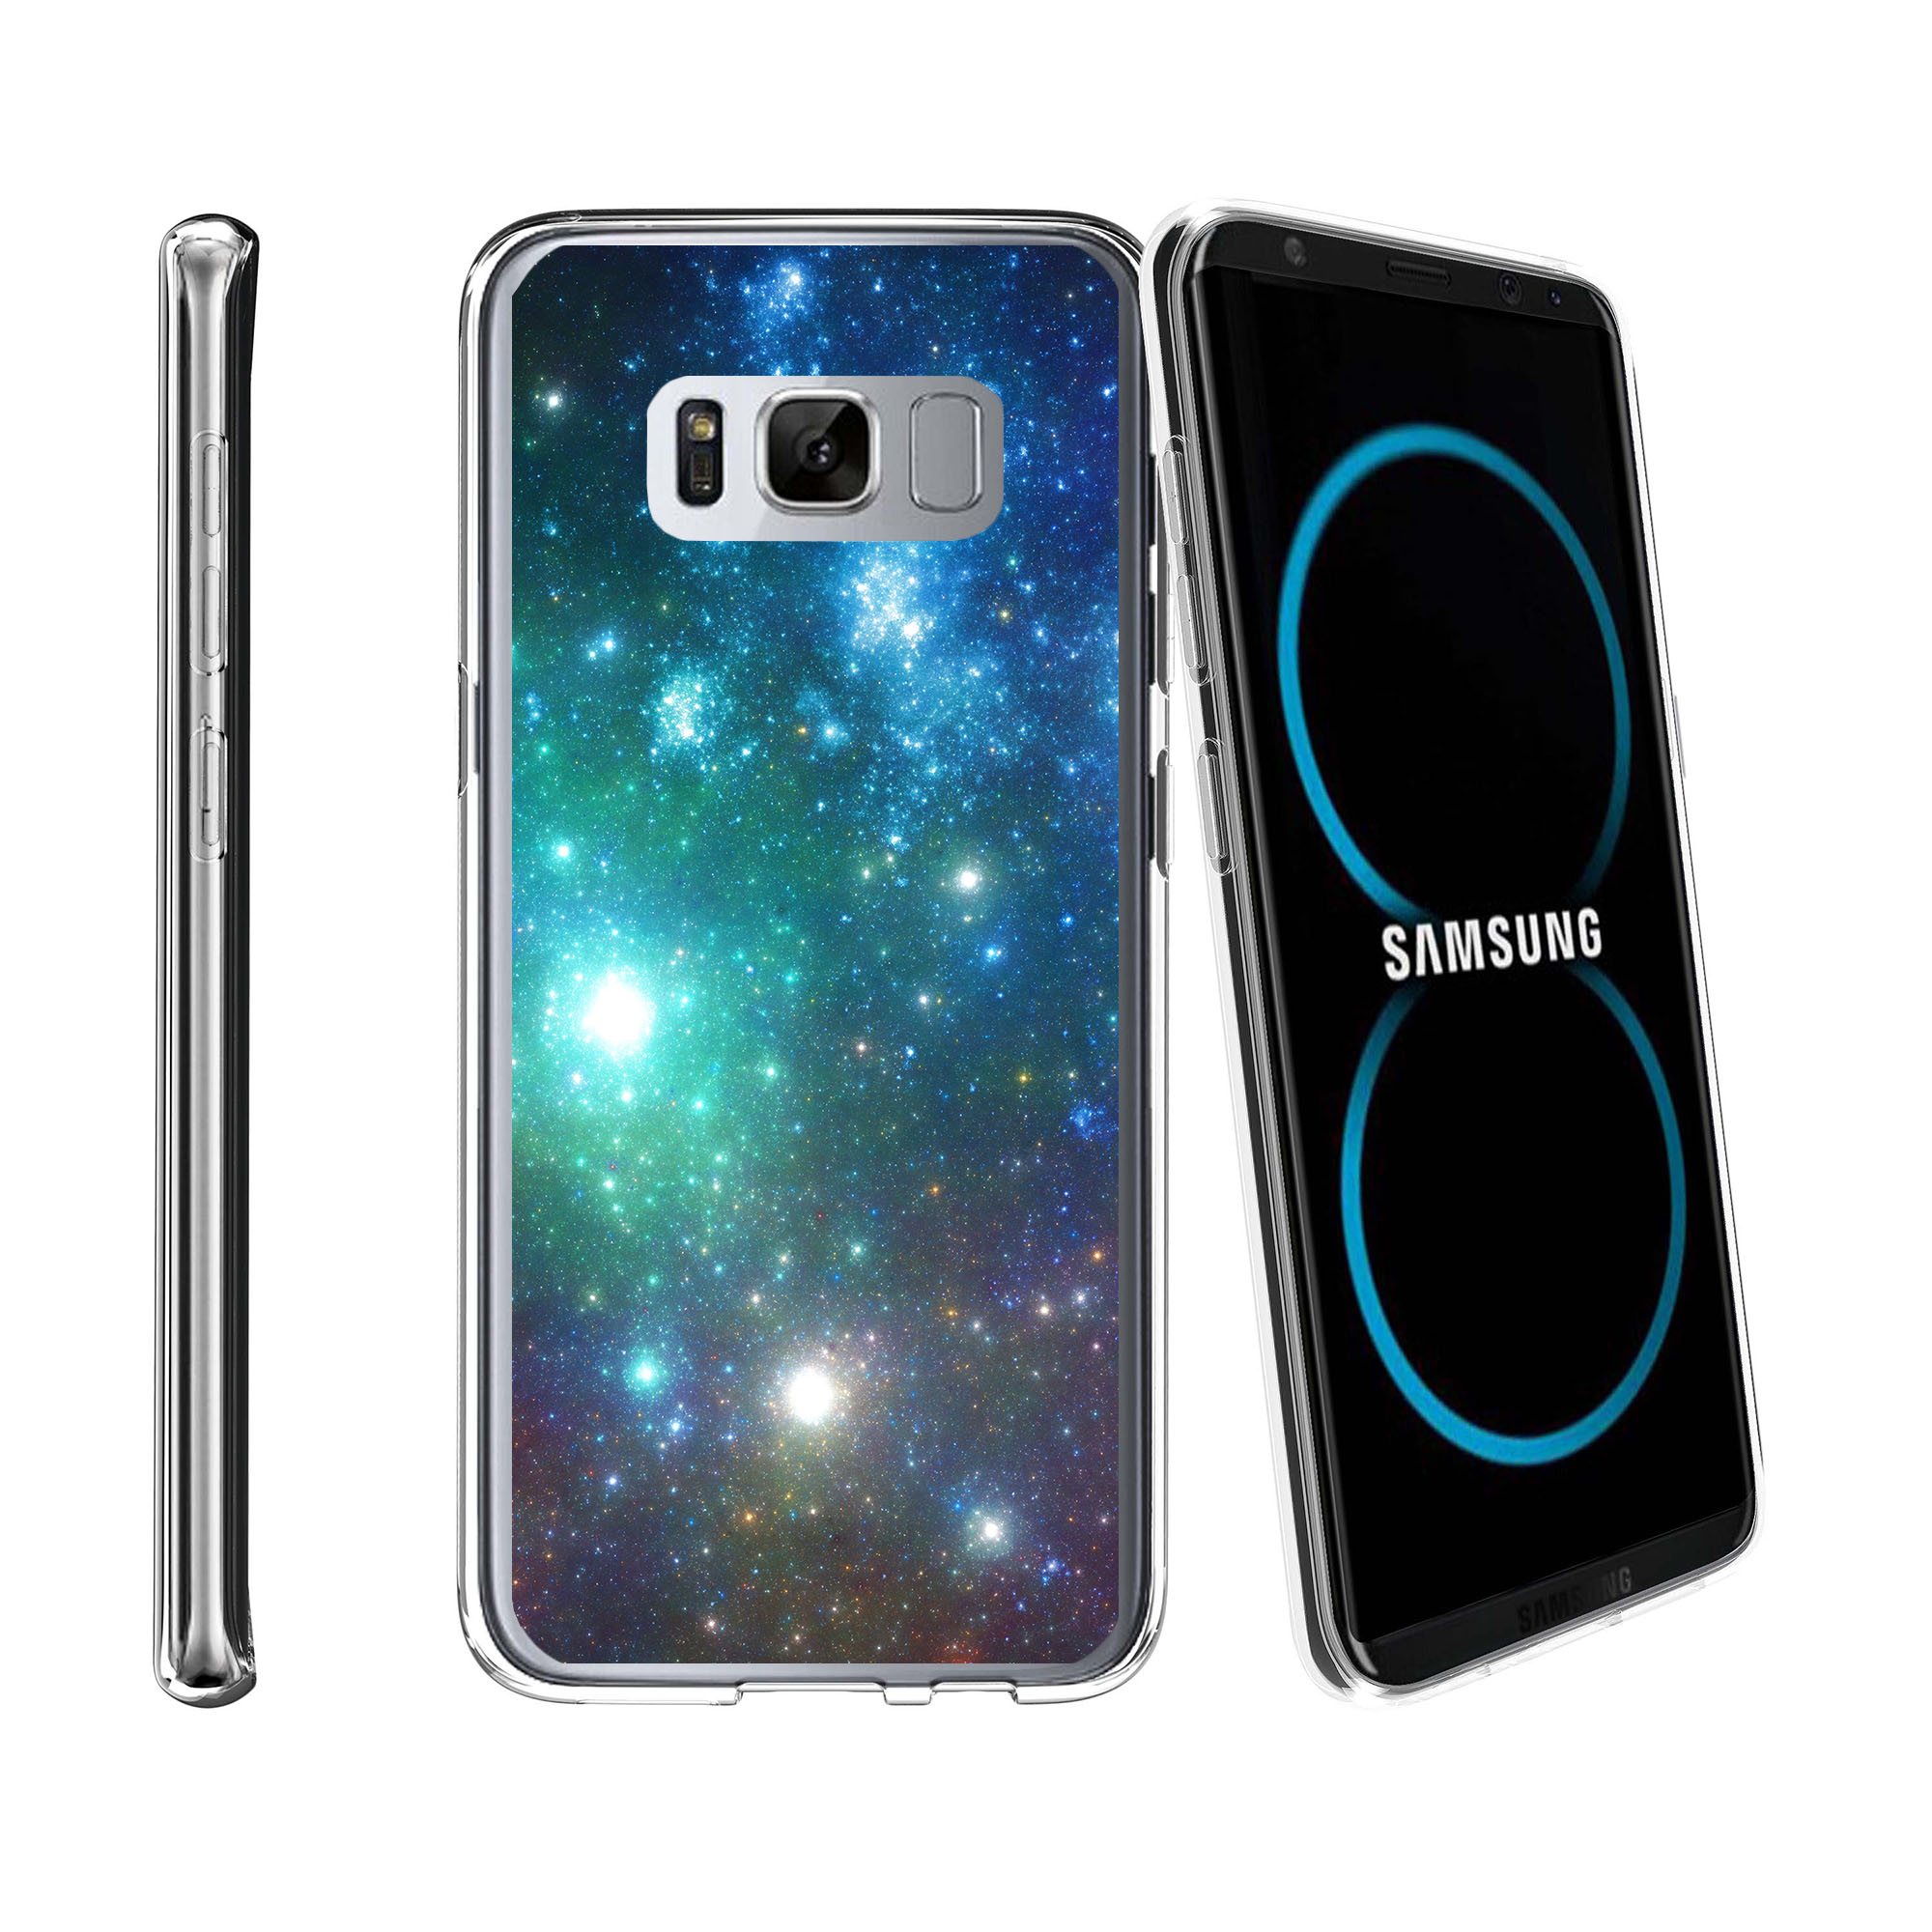 Case for Samsung Galaxy S8 SM-G950 | Galaxy S8 Transparent Silicone Case [ Flex Force ] Flexible Clear Case Galaxy Collection